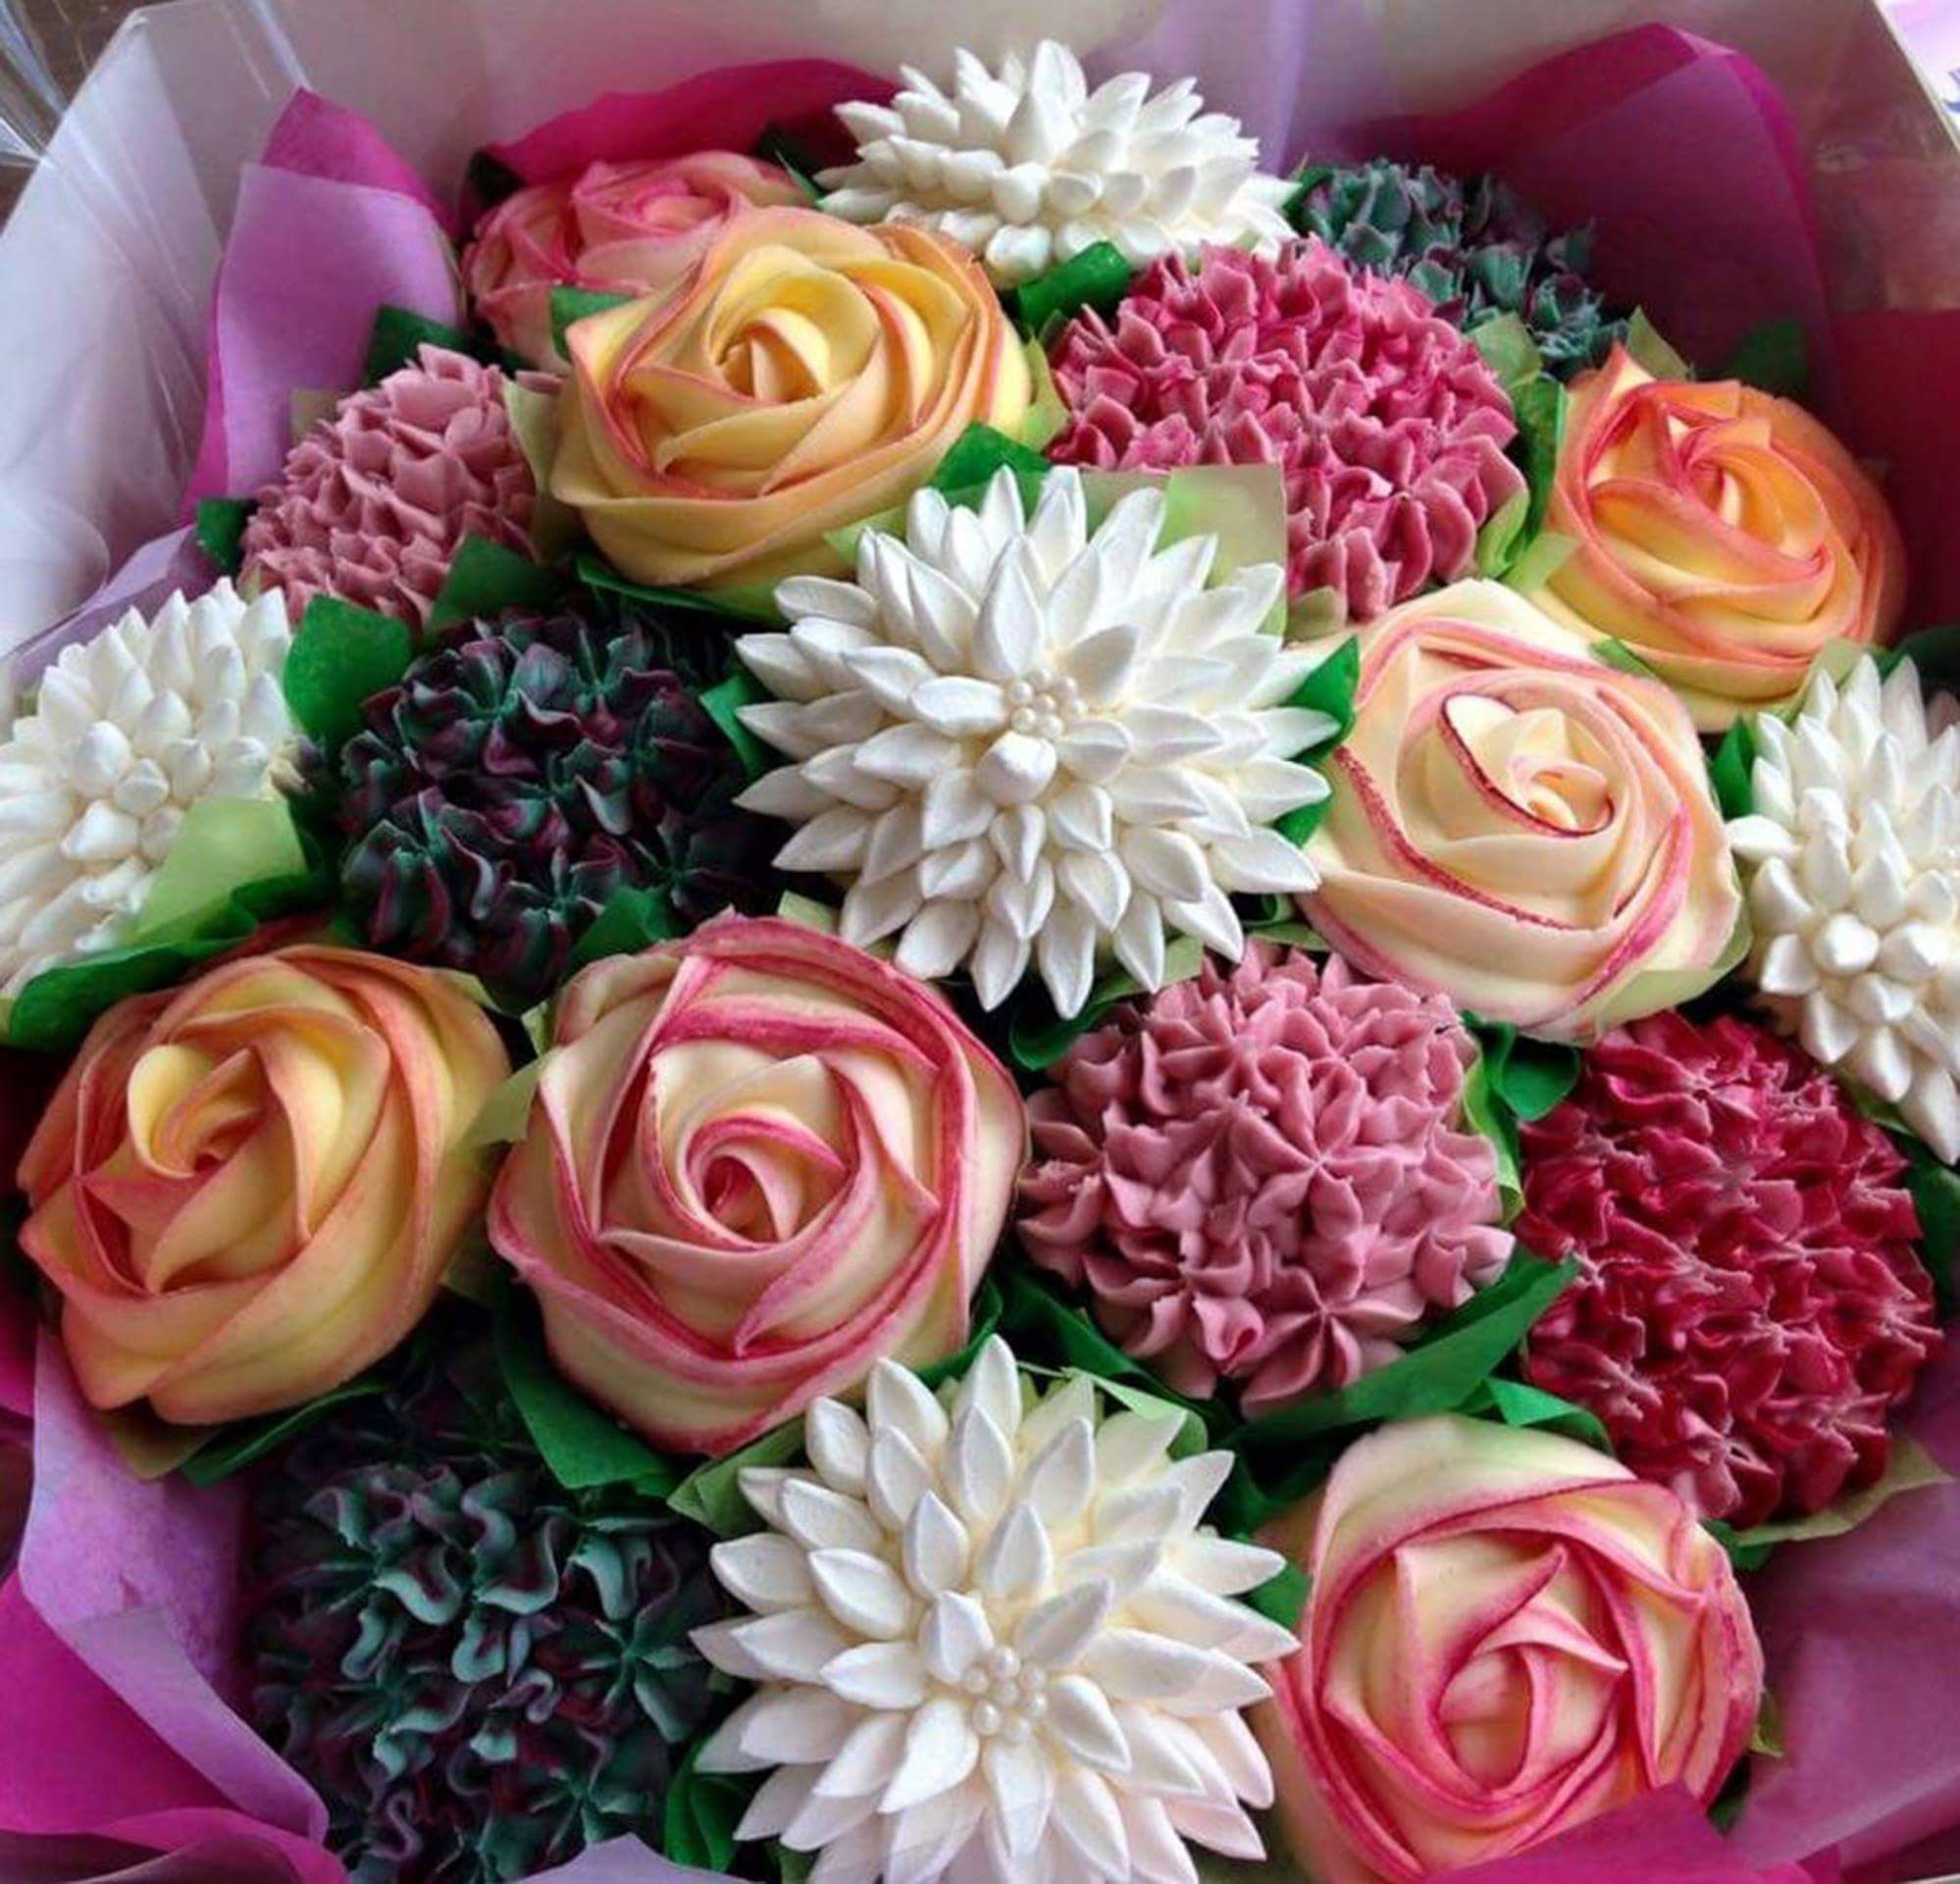 Cupcake flower bouquet shower ideas pinterest cupcake flower cupcake flower bouquet izmirmasajfo